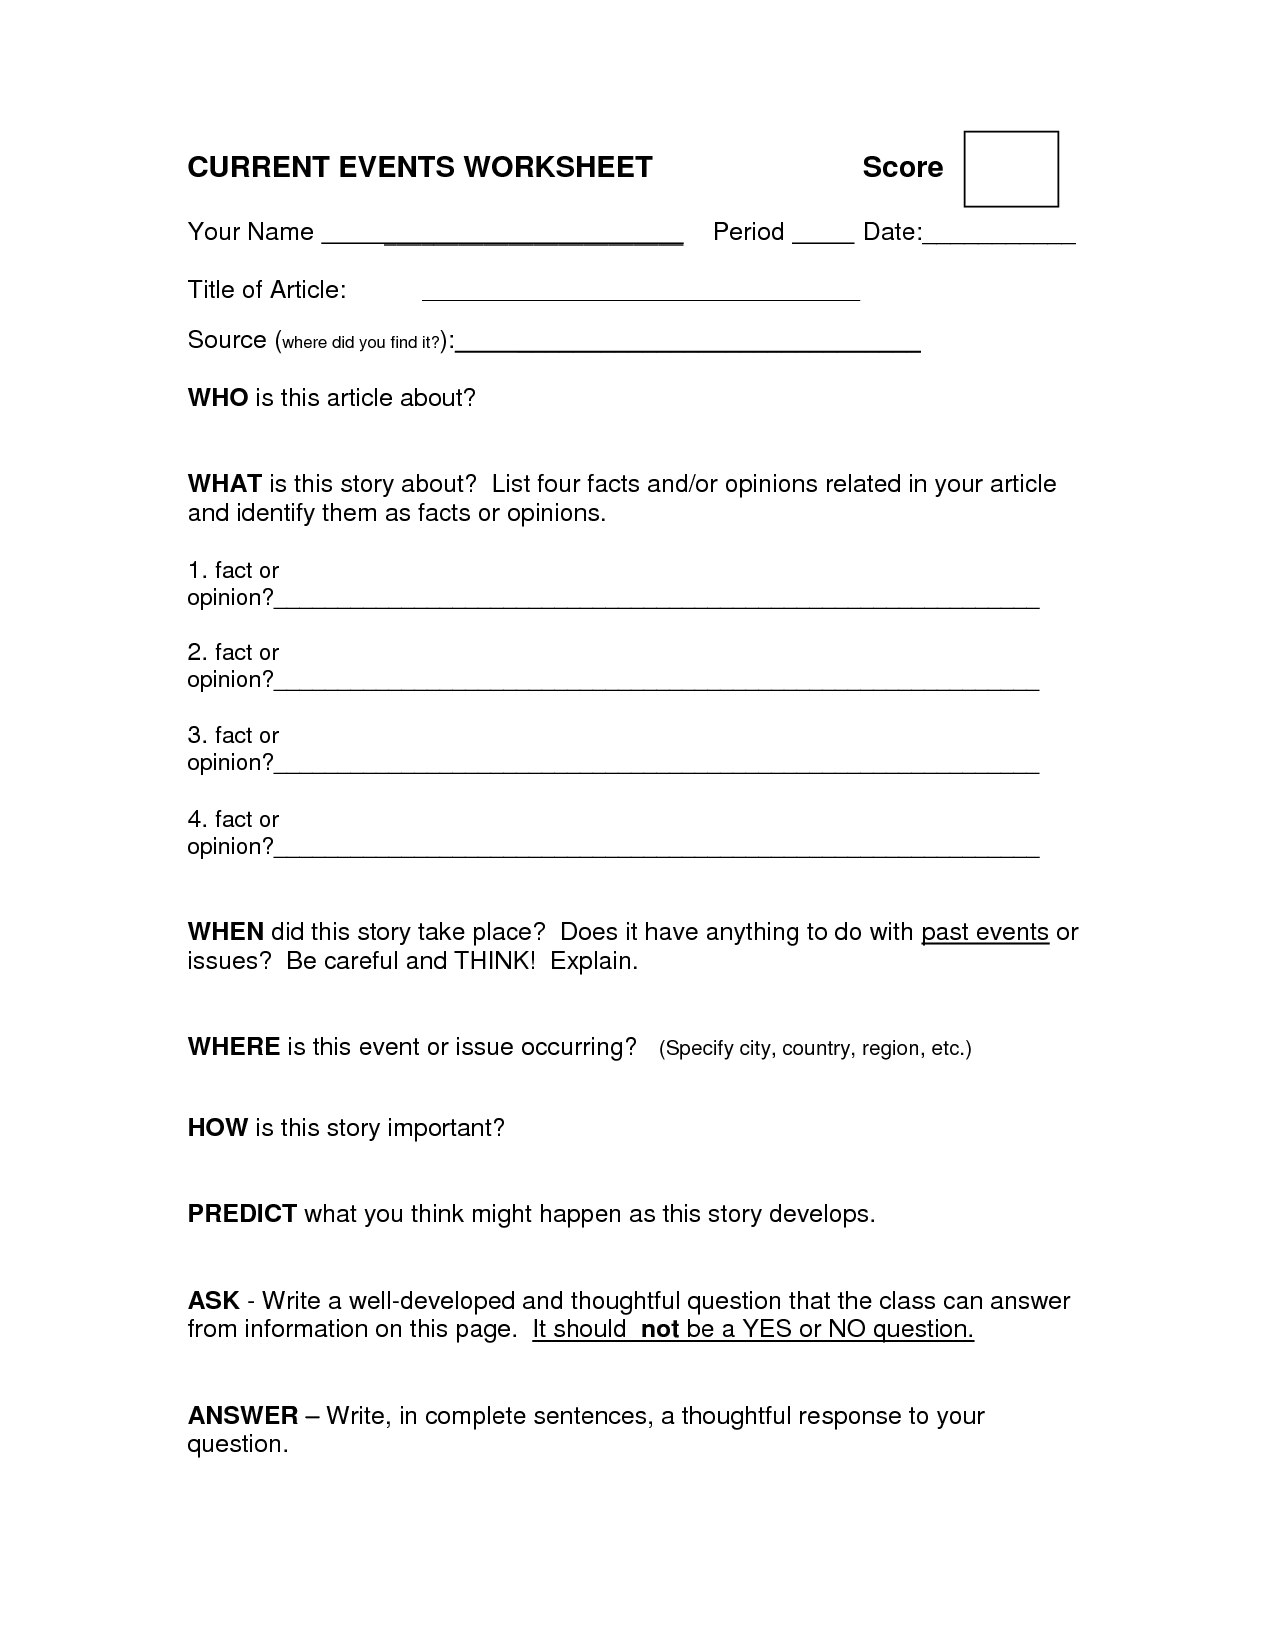 18 Best Images Of Current Events Worksheet Template Elementary